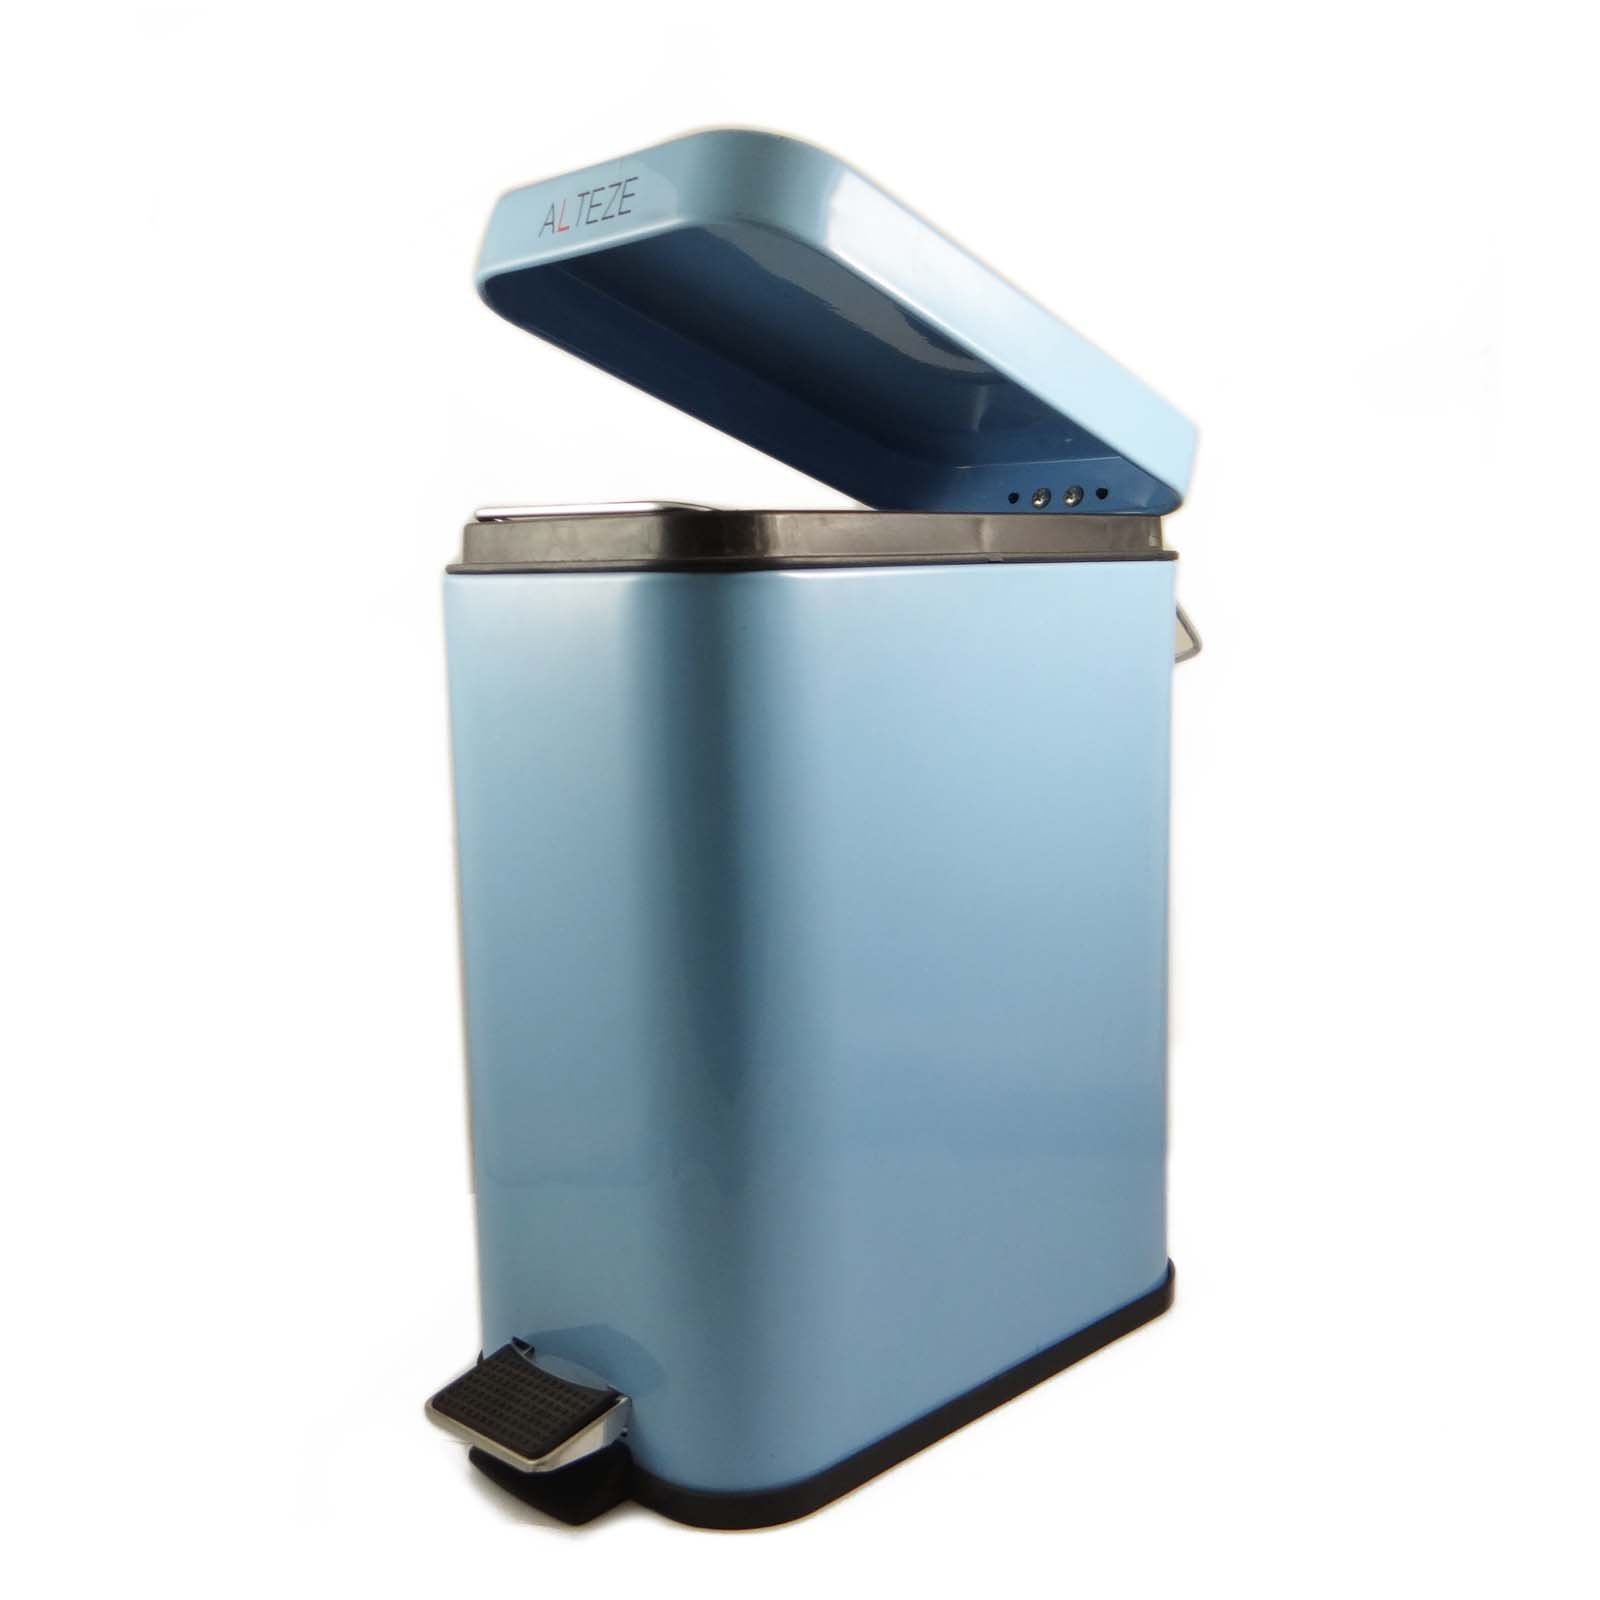 Cheap Large Pedal Bin, find Large Pedal Bin deals on line at Alibaba.com